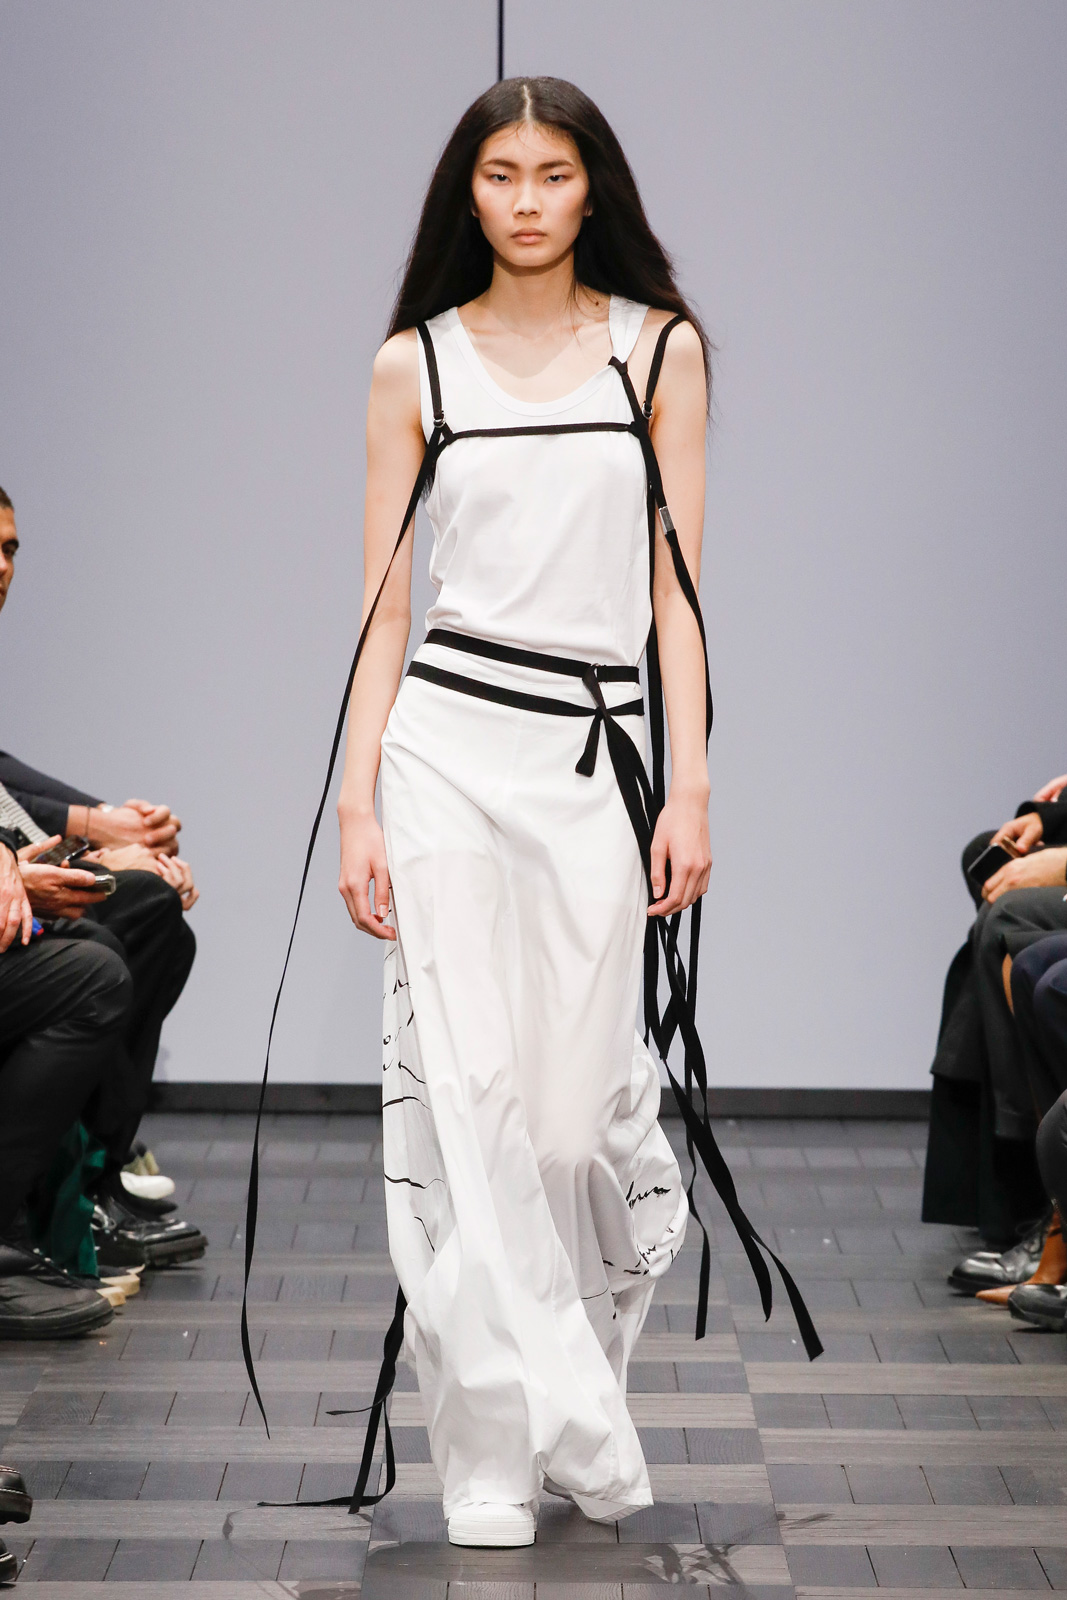 The past is present in Ann Demeulemeester's Spring/Summer 2022 collection